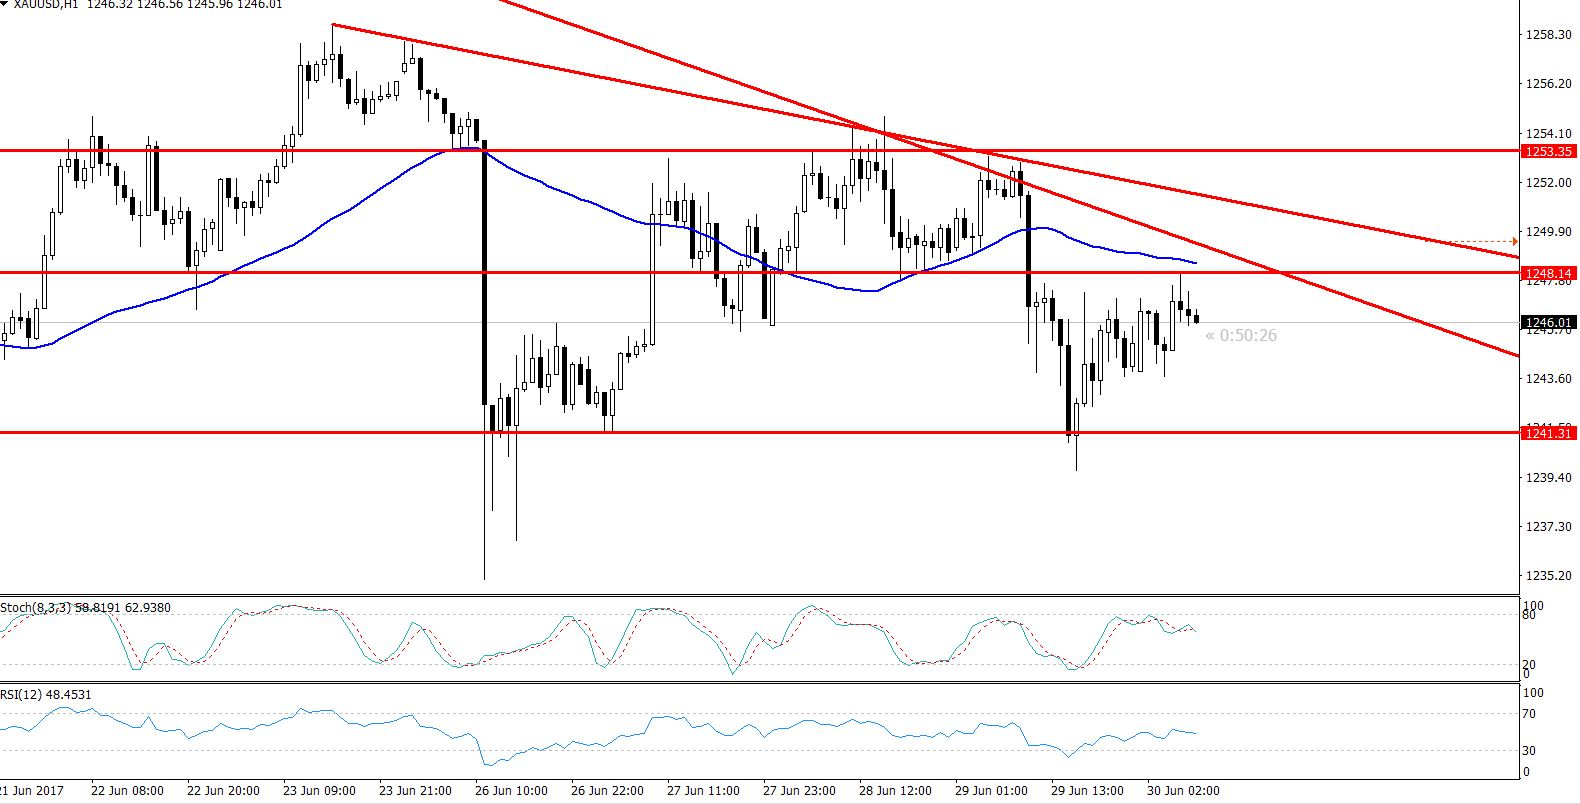 Gold - Hourly Chart - Triangle Breakout